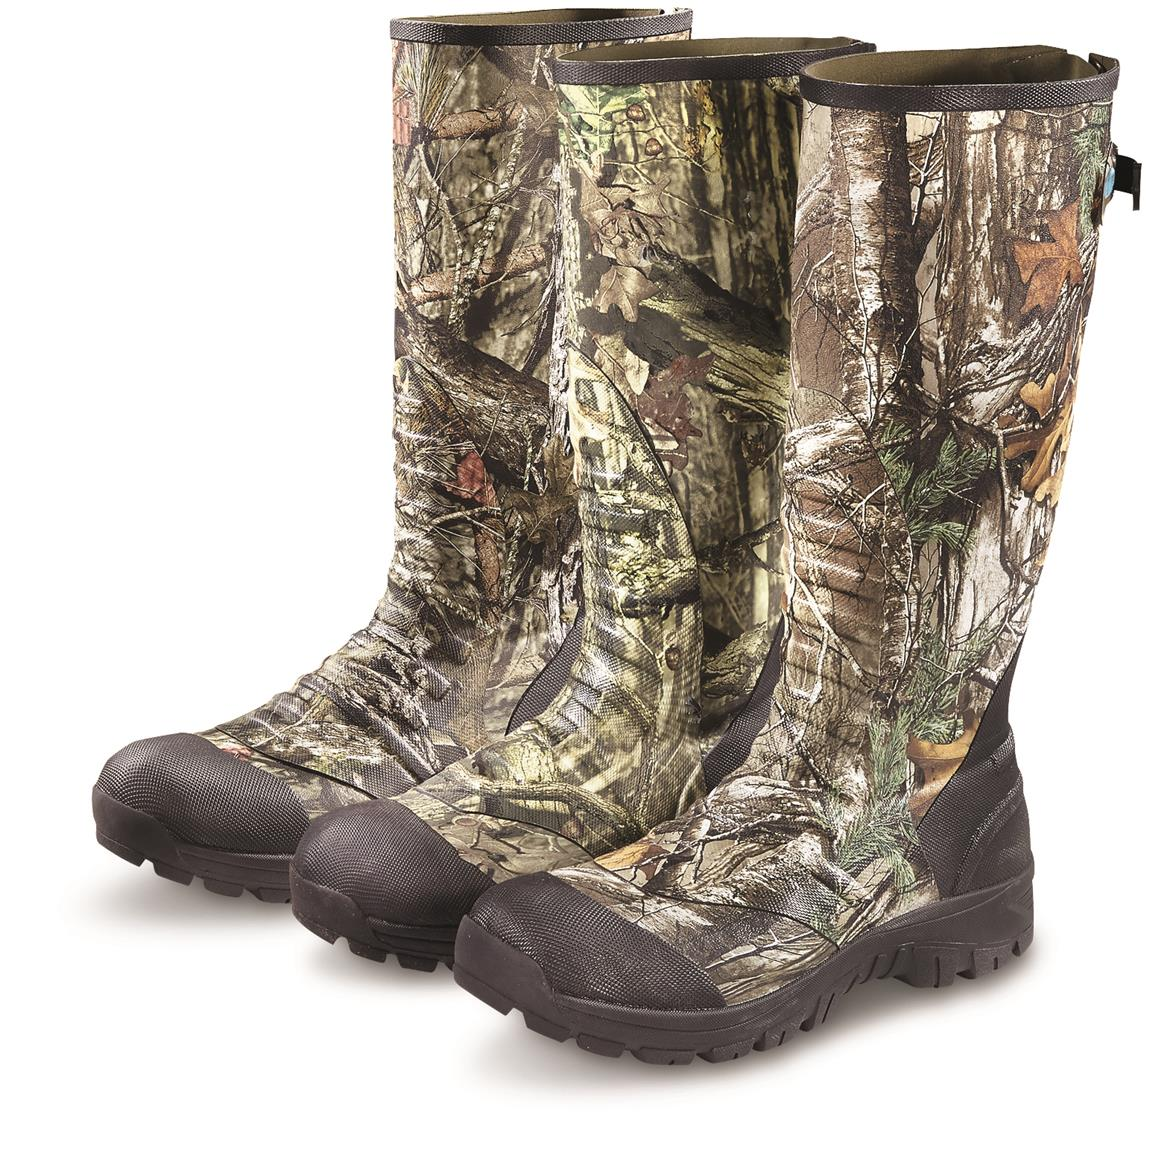 Guide Gear Men's Ankle Fit Insulated Rubber Boots, 800 Gram • From Left to Right: Mossy Oak Break-Up Country / Mossy Oak Break-Up Infinity / Realtree Xtra